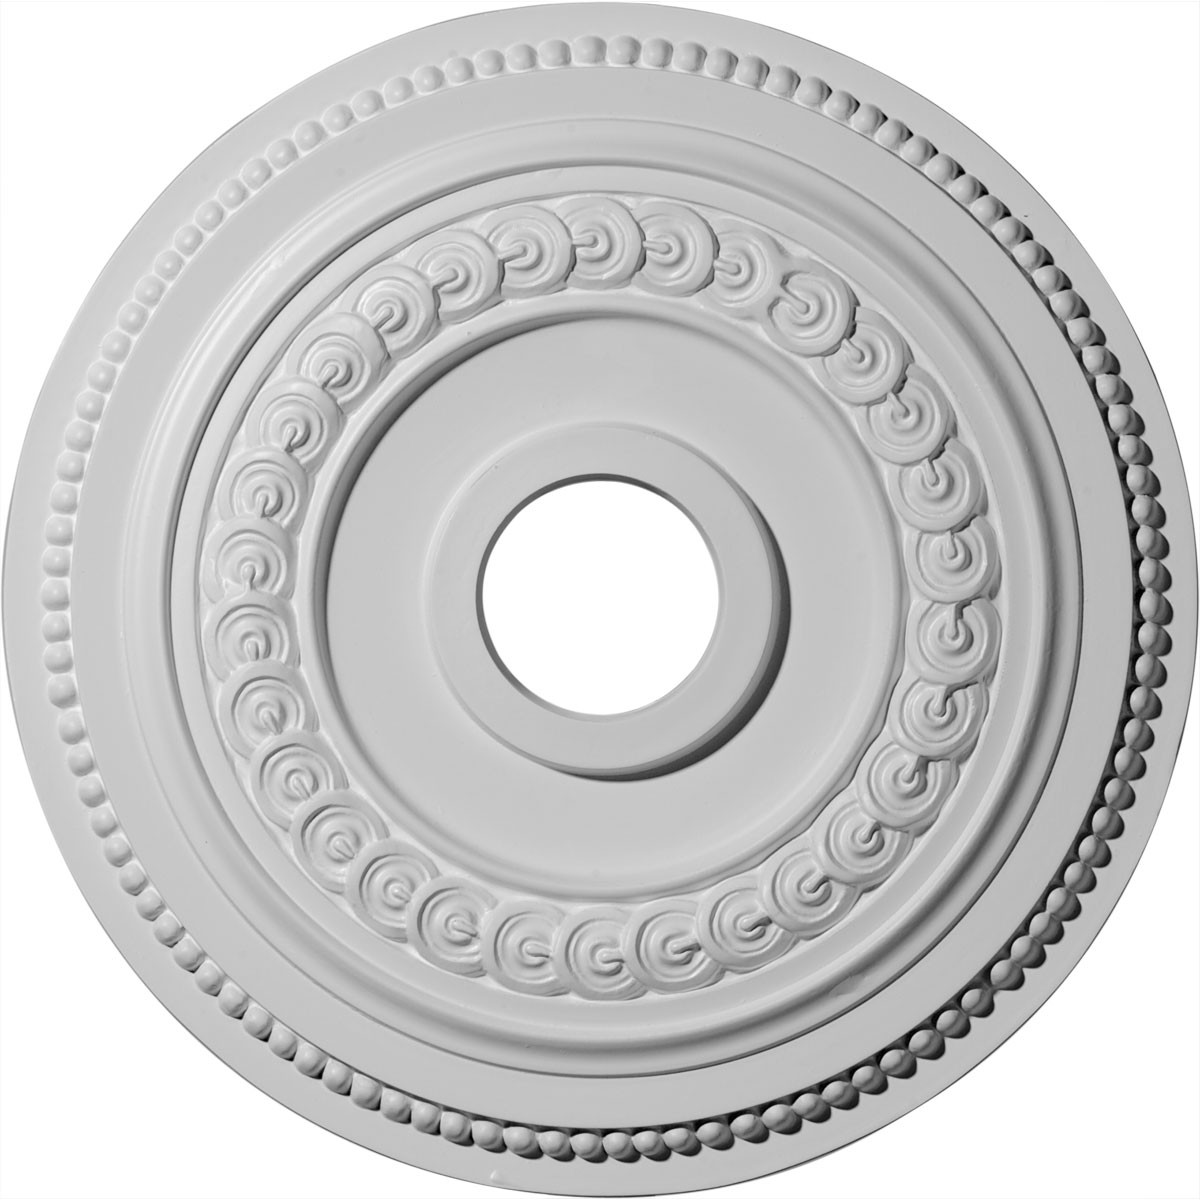 "EM-CM18OL1 - 18""OD x 3 3/8""ID x 7/8""P Oldham Ceiling Medallion (Fits Canopies up to 8 5/8"")"